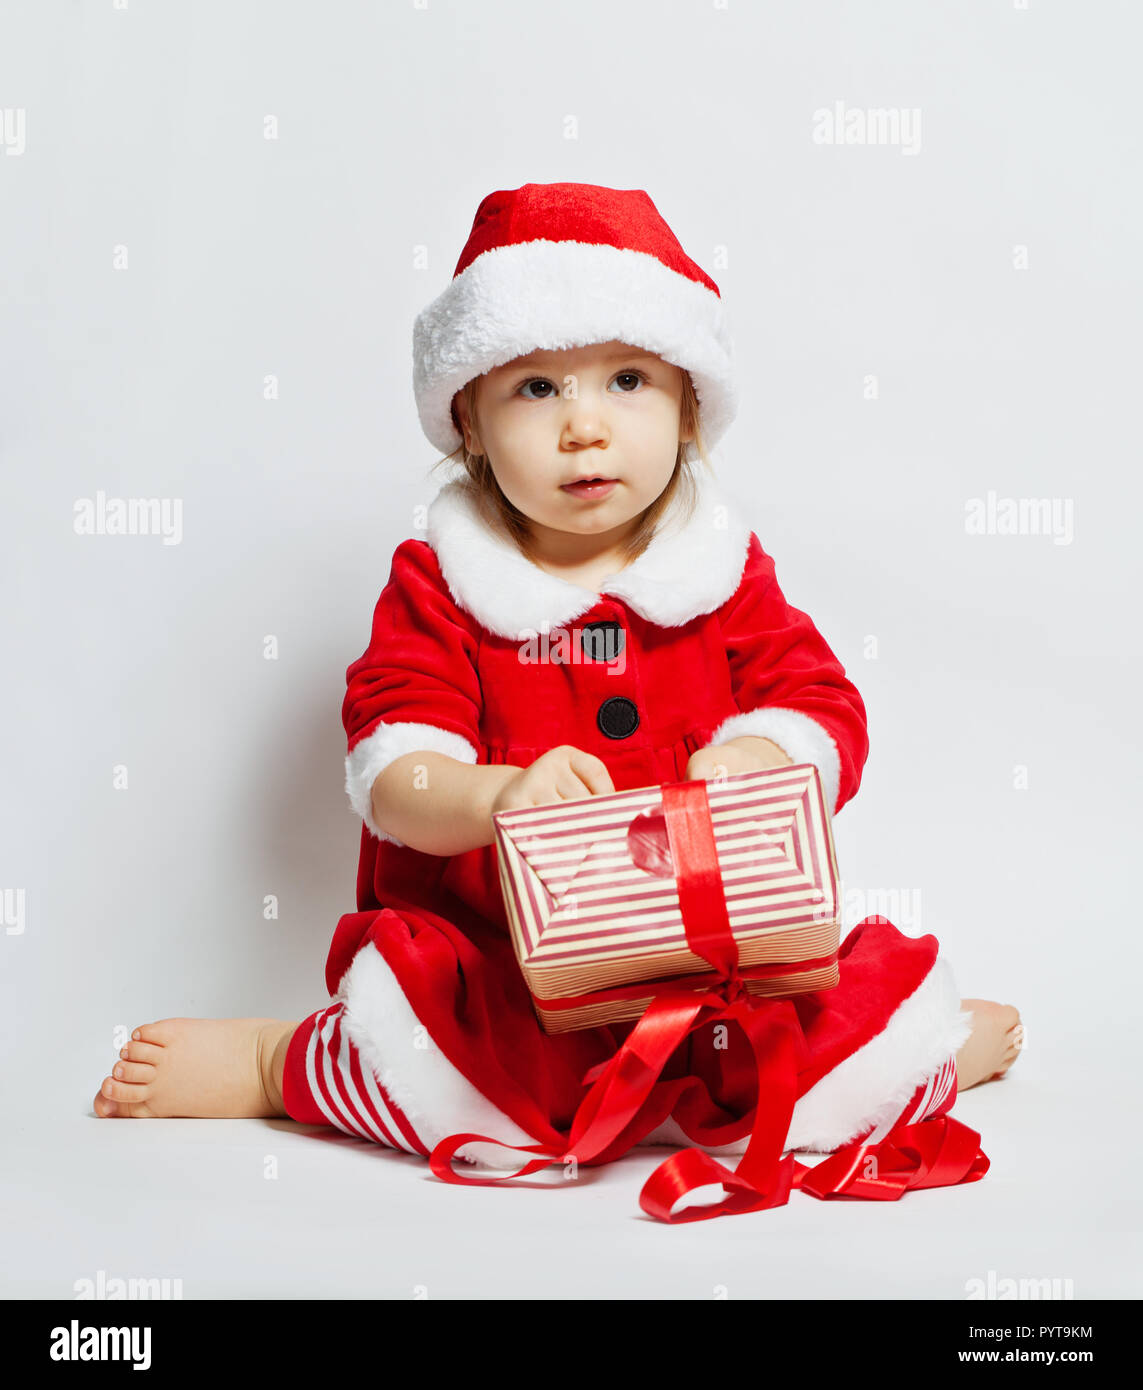 370be8bfe Cute baby in santa hat opening Christmas gift box Stock Photo ...